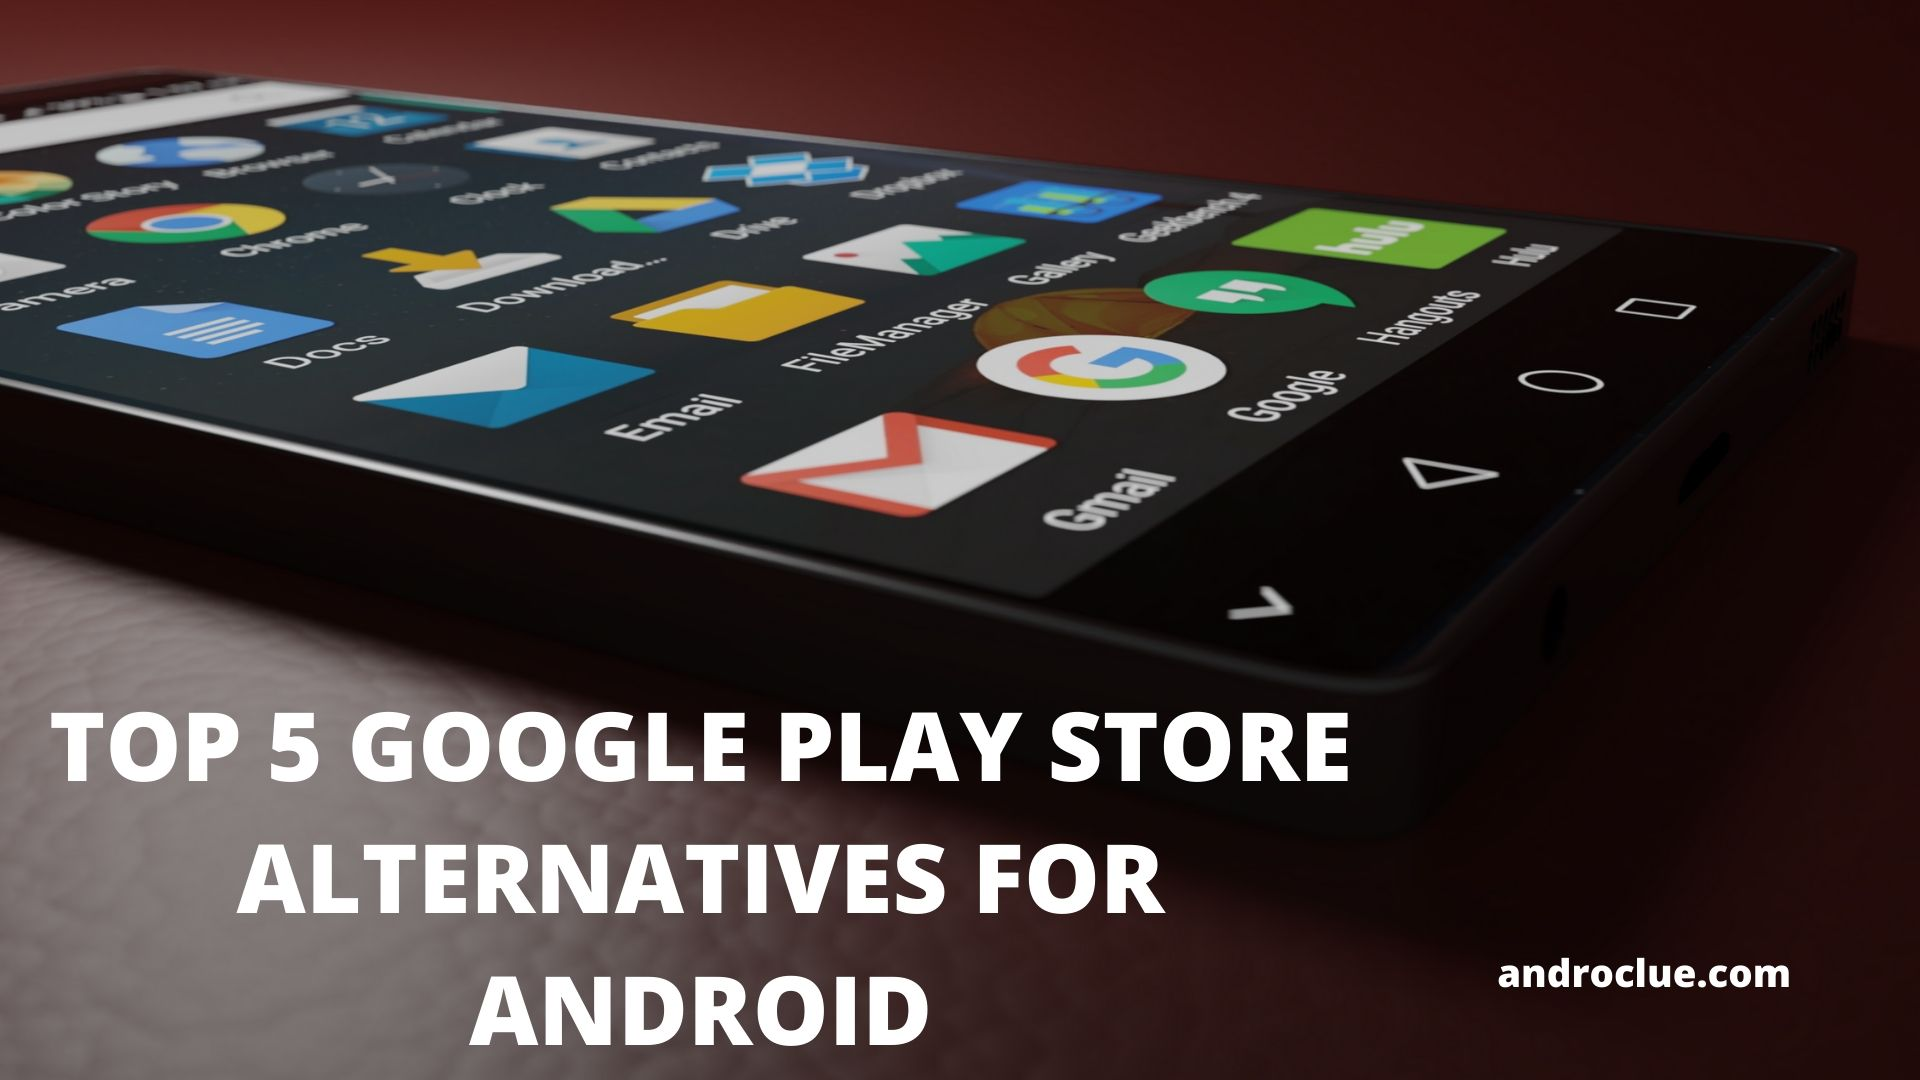 Google Play Store Alternatives